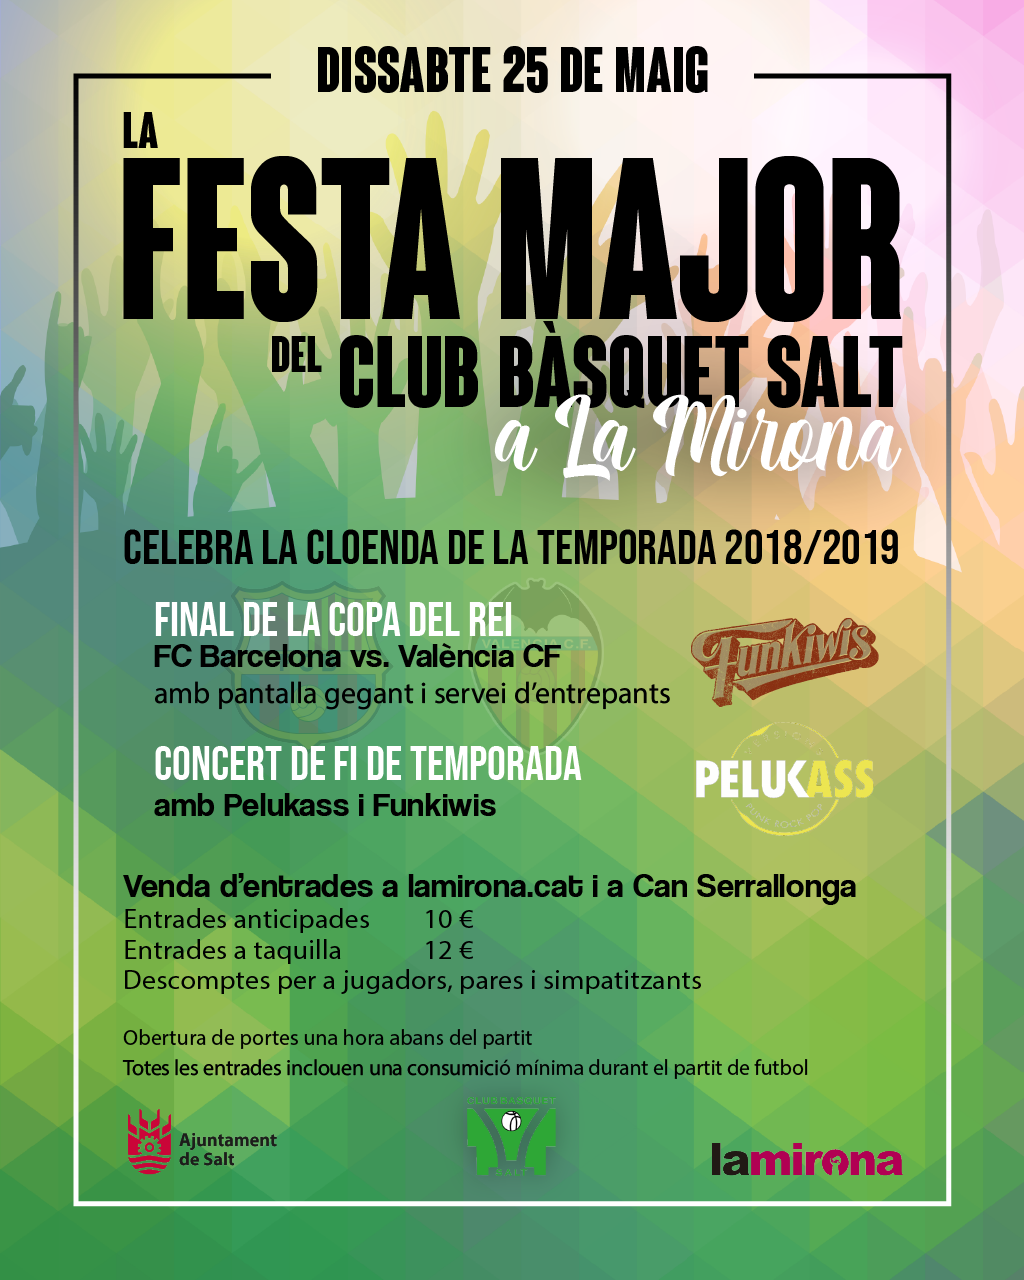 La Festa Major del Club Bàsquet Salt